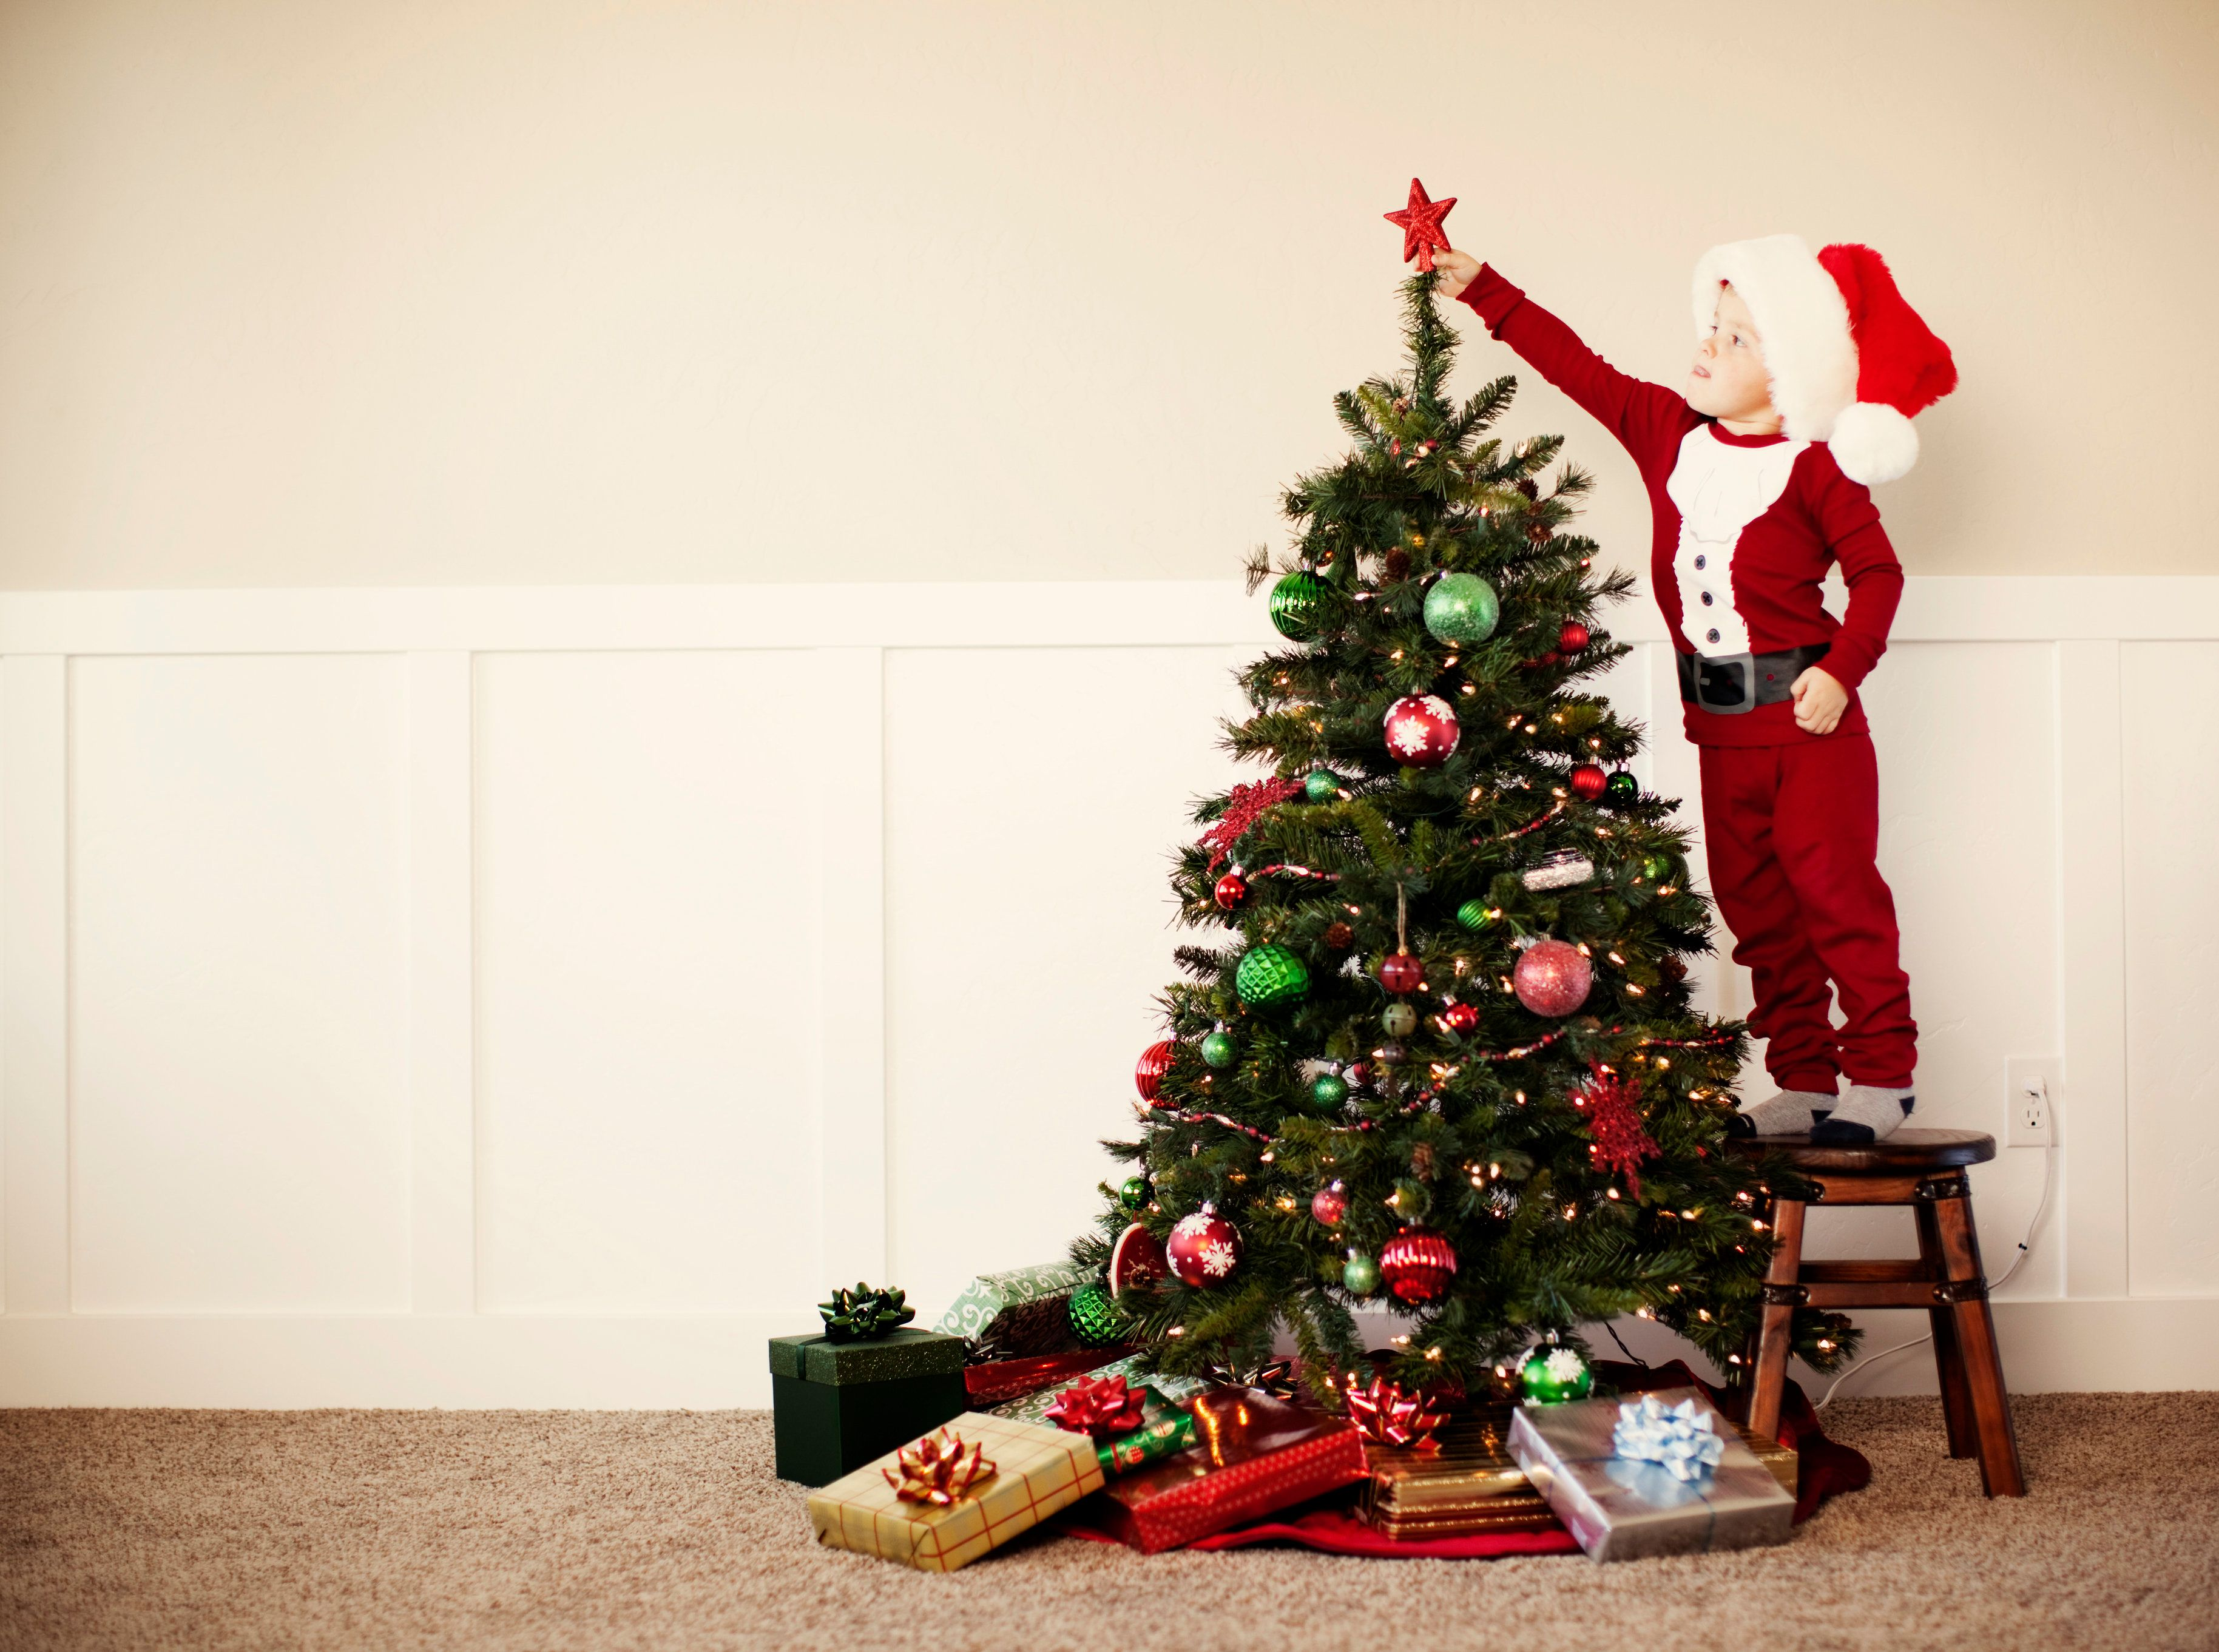 A young boy dressed in Santa pajamas places a star a top the Christmas tree.